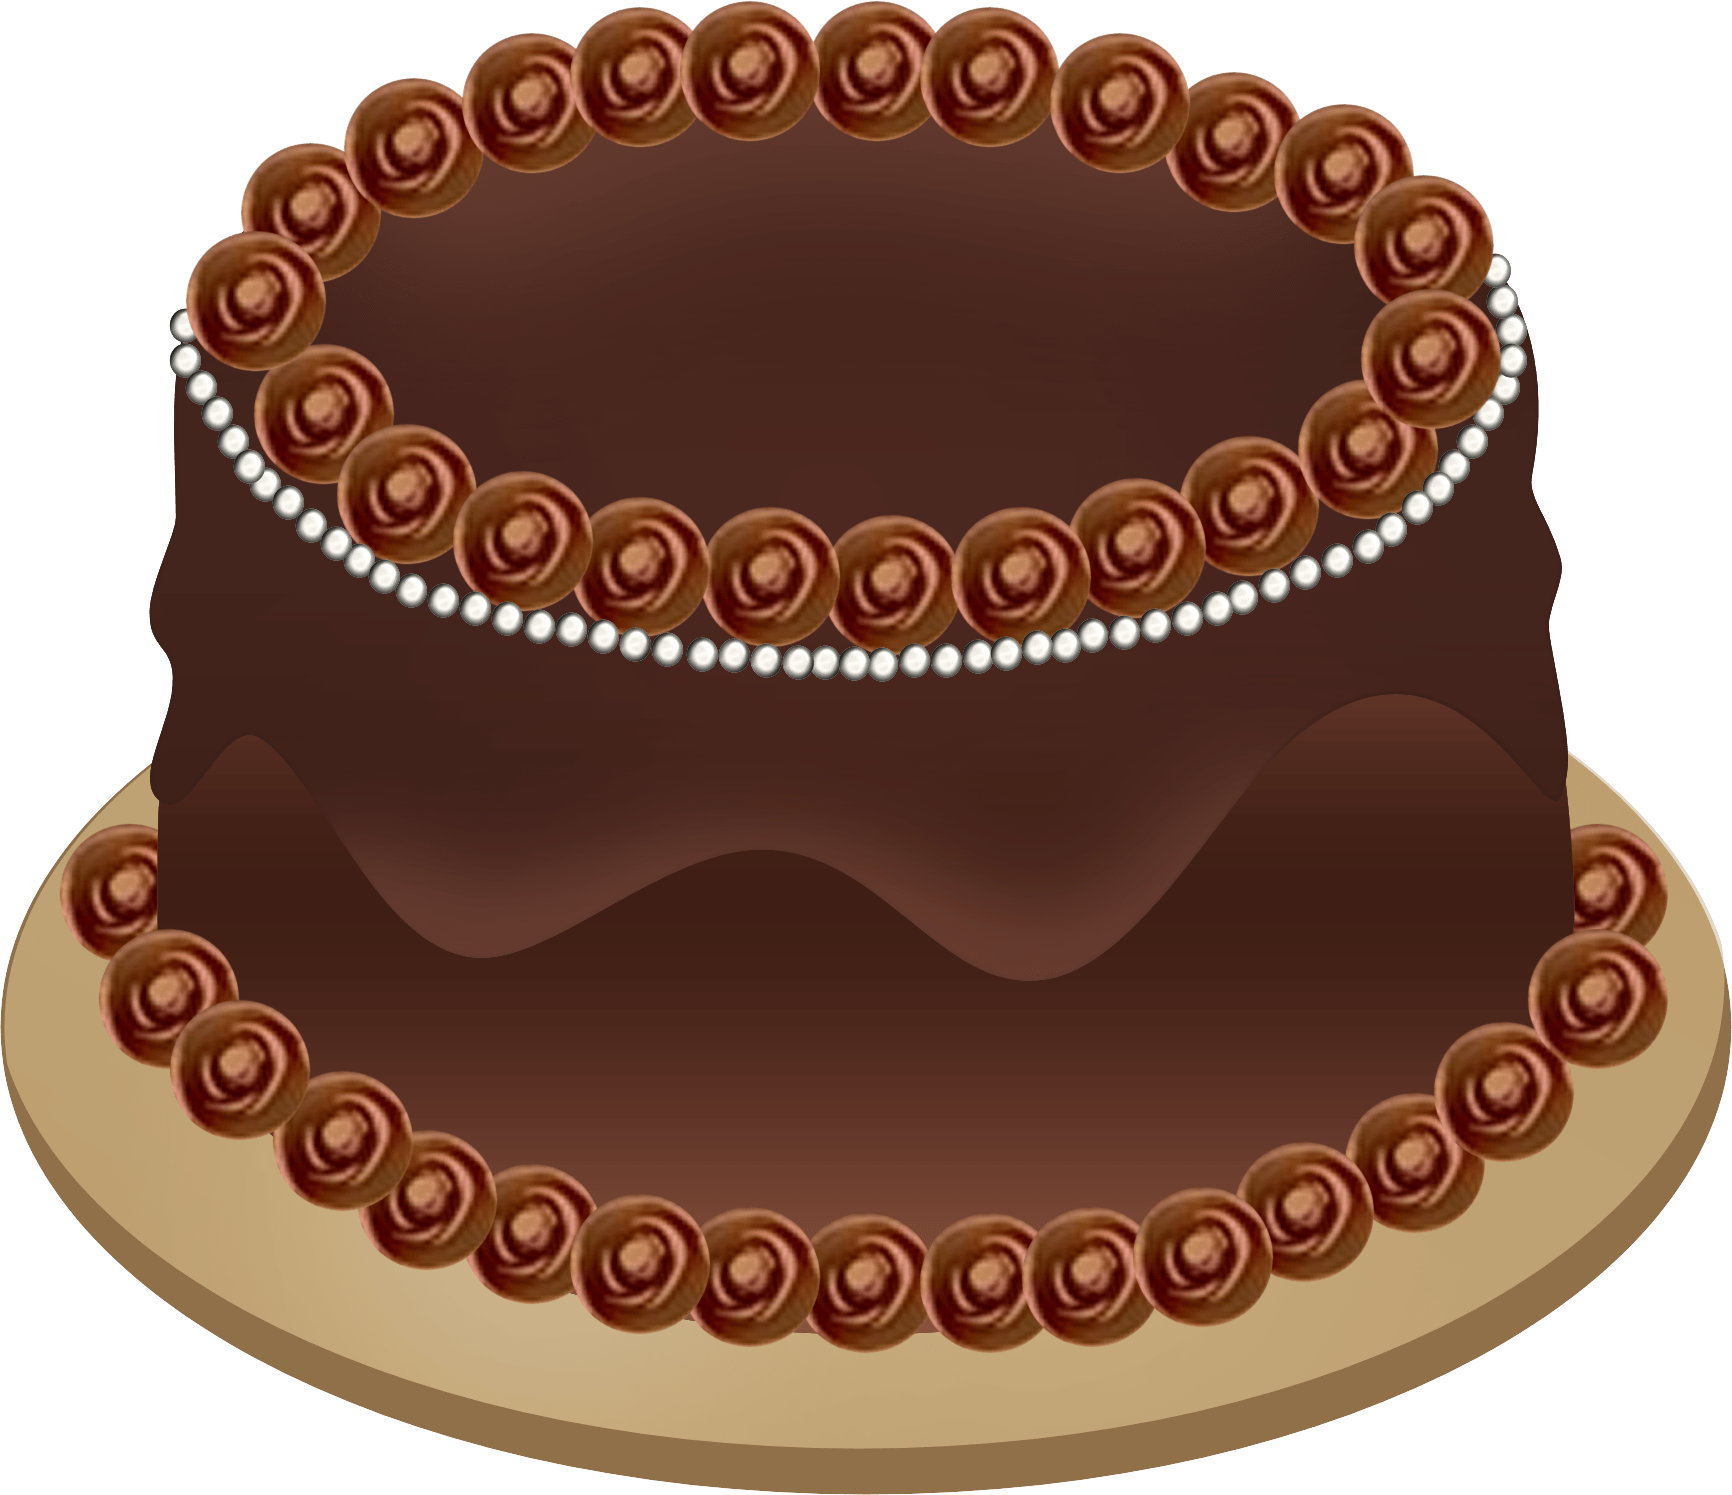 Happy Birthday Cake Clipart Free Vector For Free Download